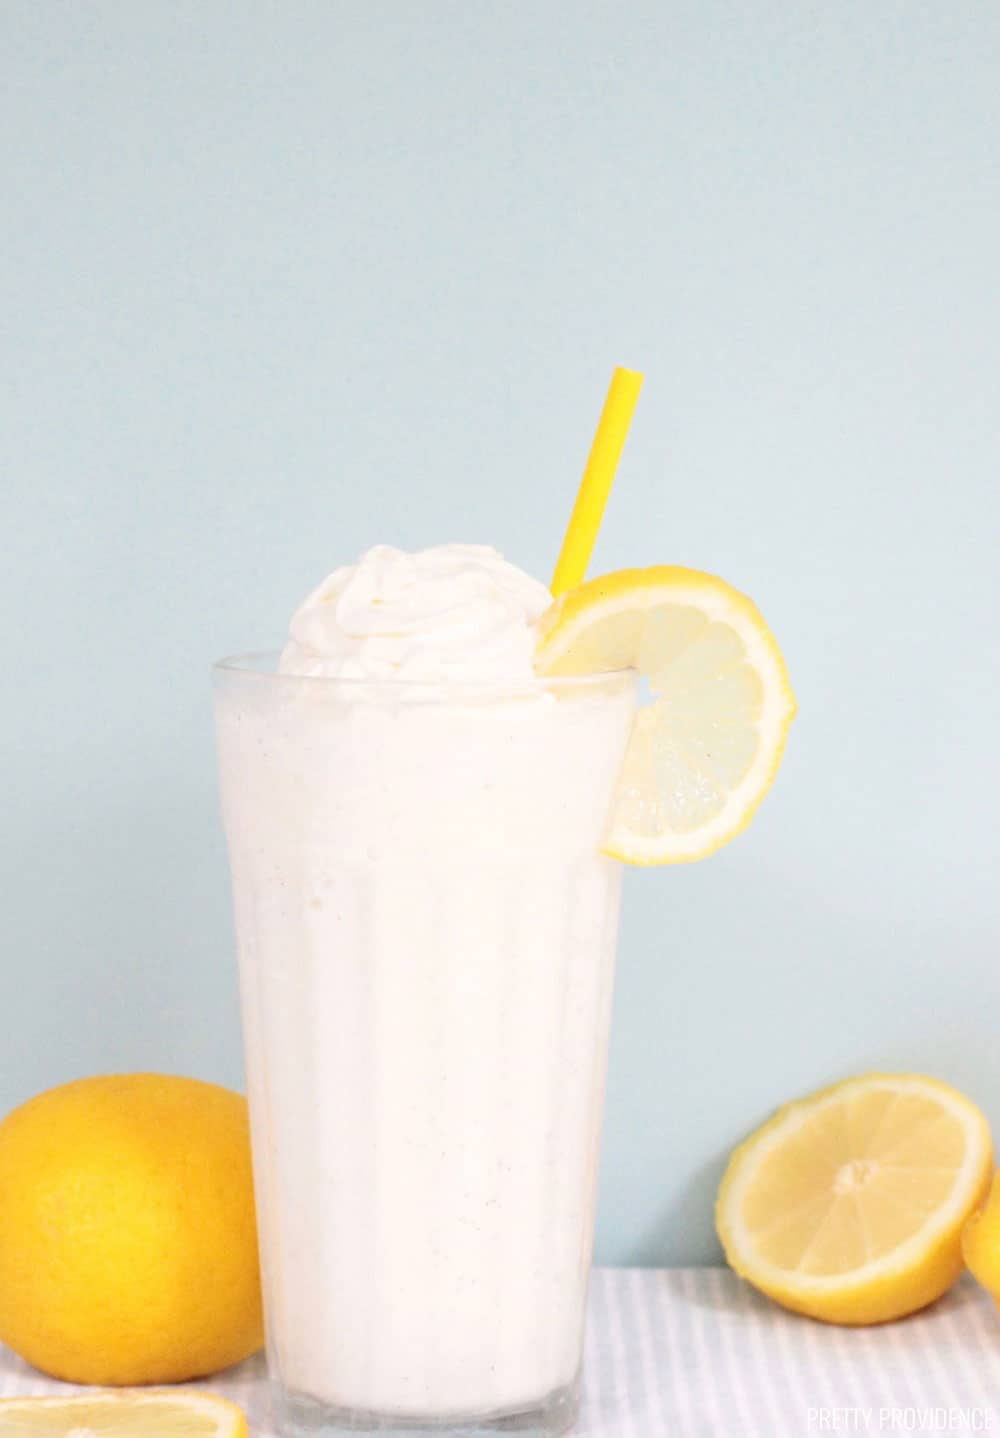 Frosted Lemonade or Frozen Lemonade in a glass with whipped cream on top, a yellow straw and lemon slice on the side.